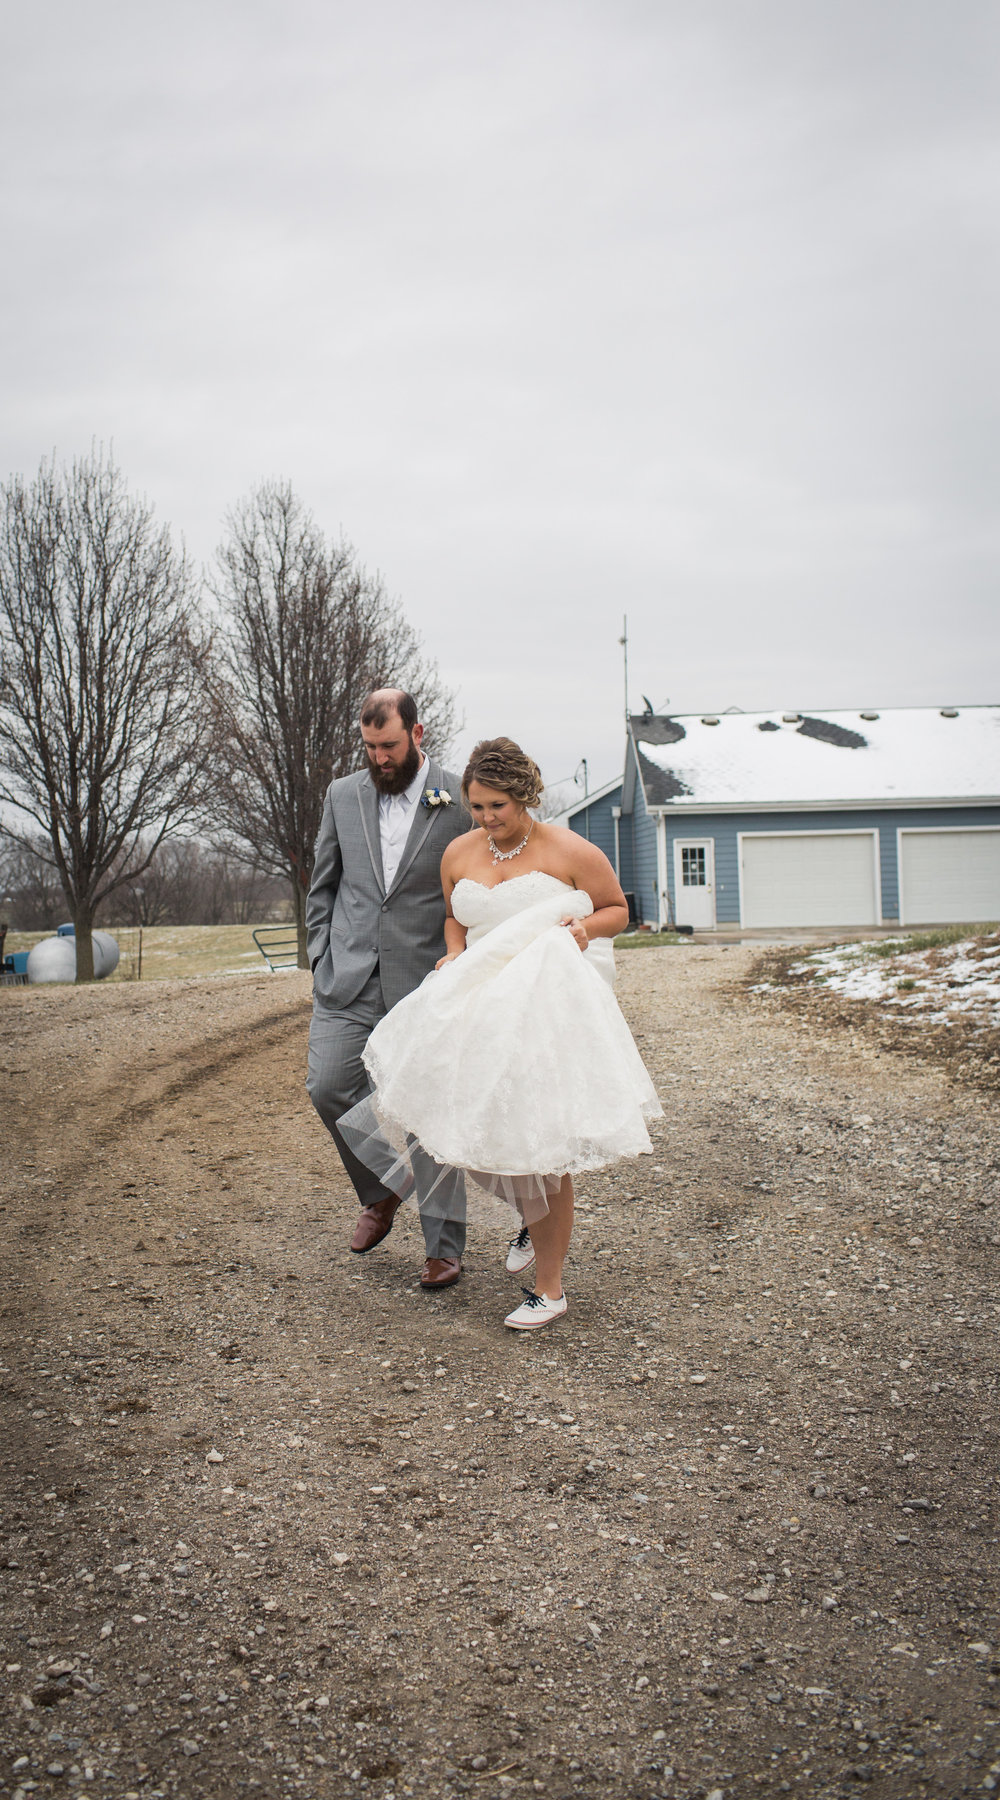 Zibell Spring Wedding, Bride and Groom, Powerful, Connected, Exploration, Laura Duggleby Photography -102.JPG